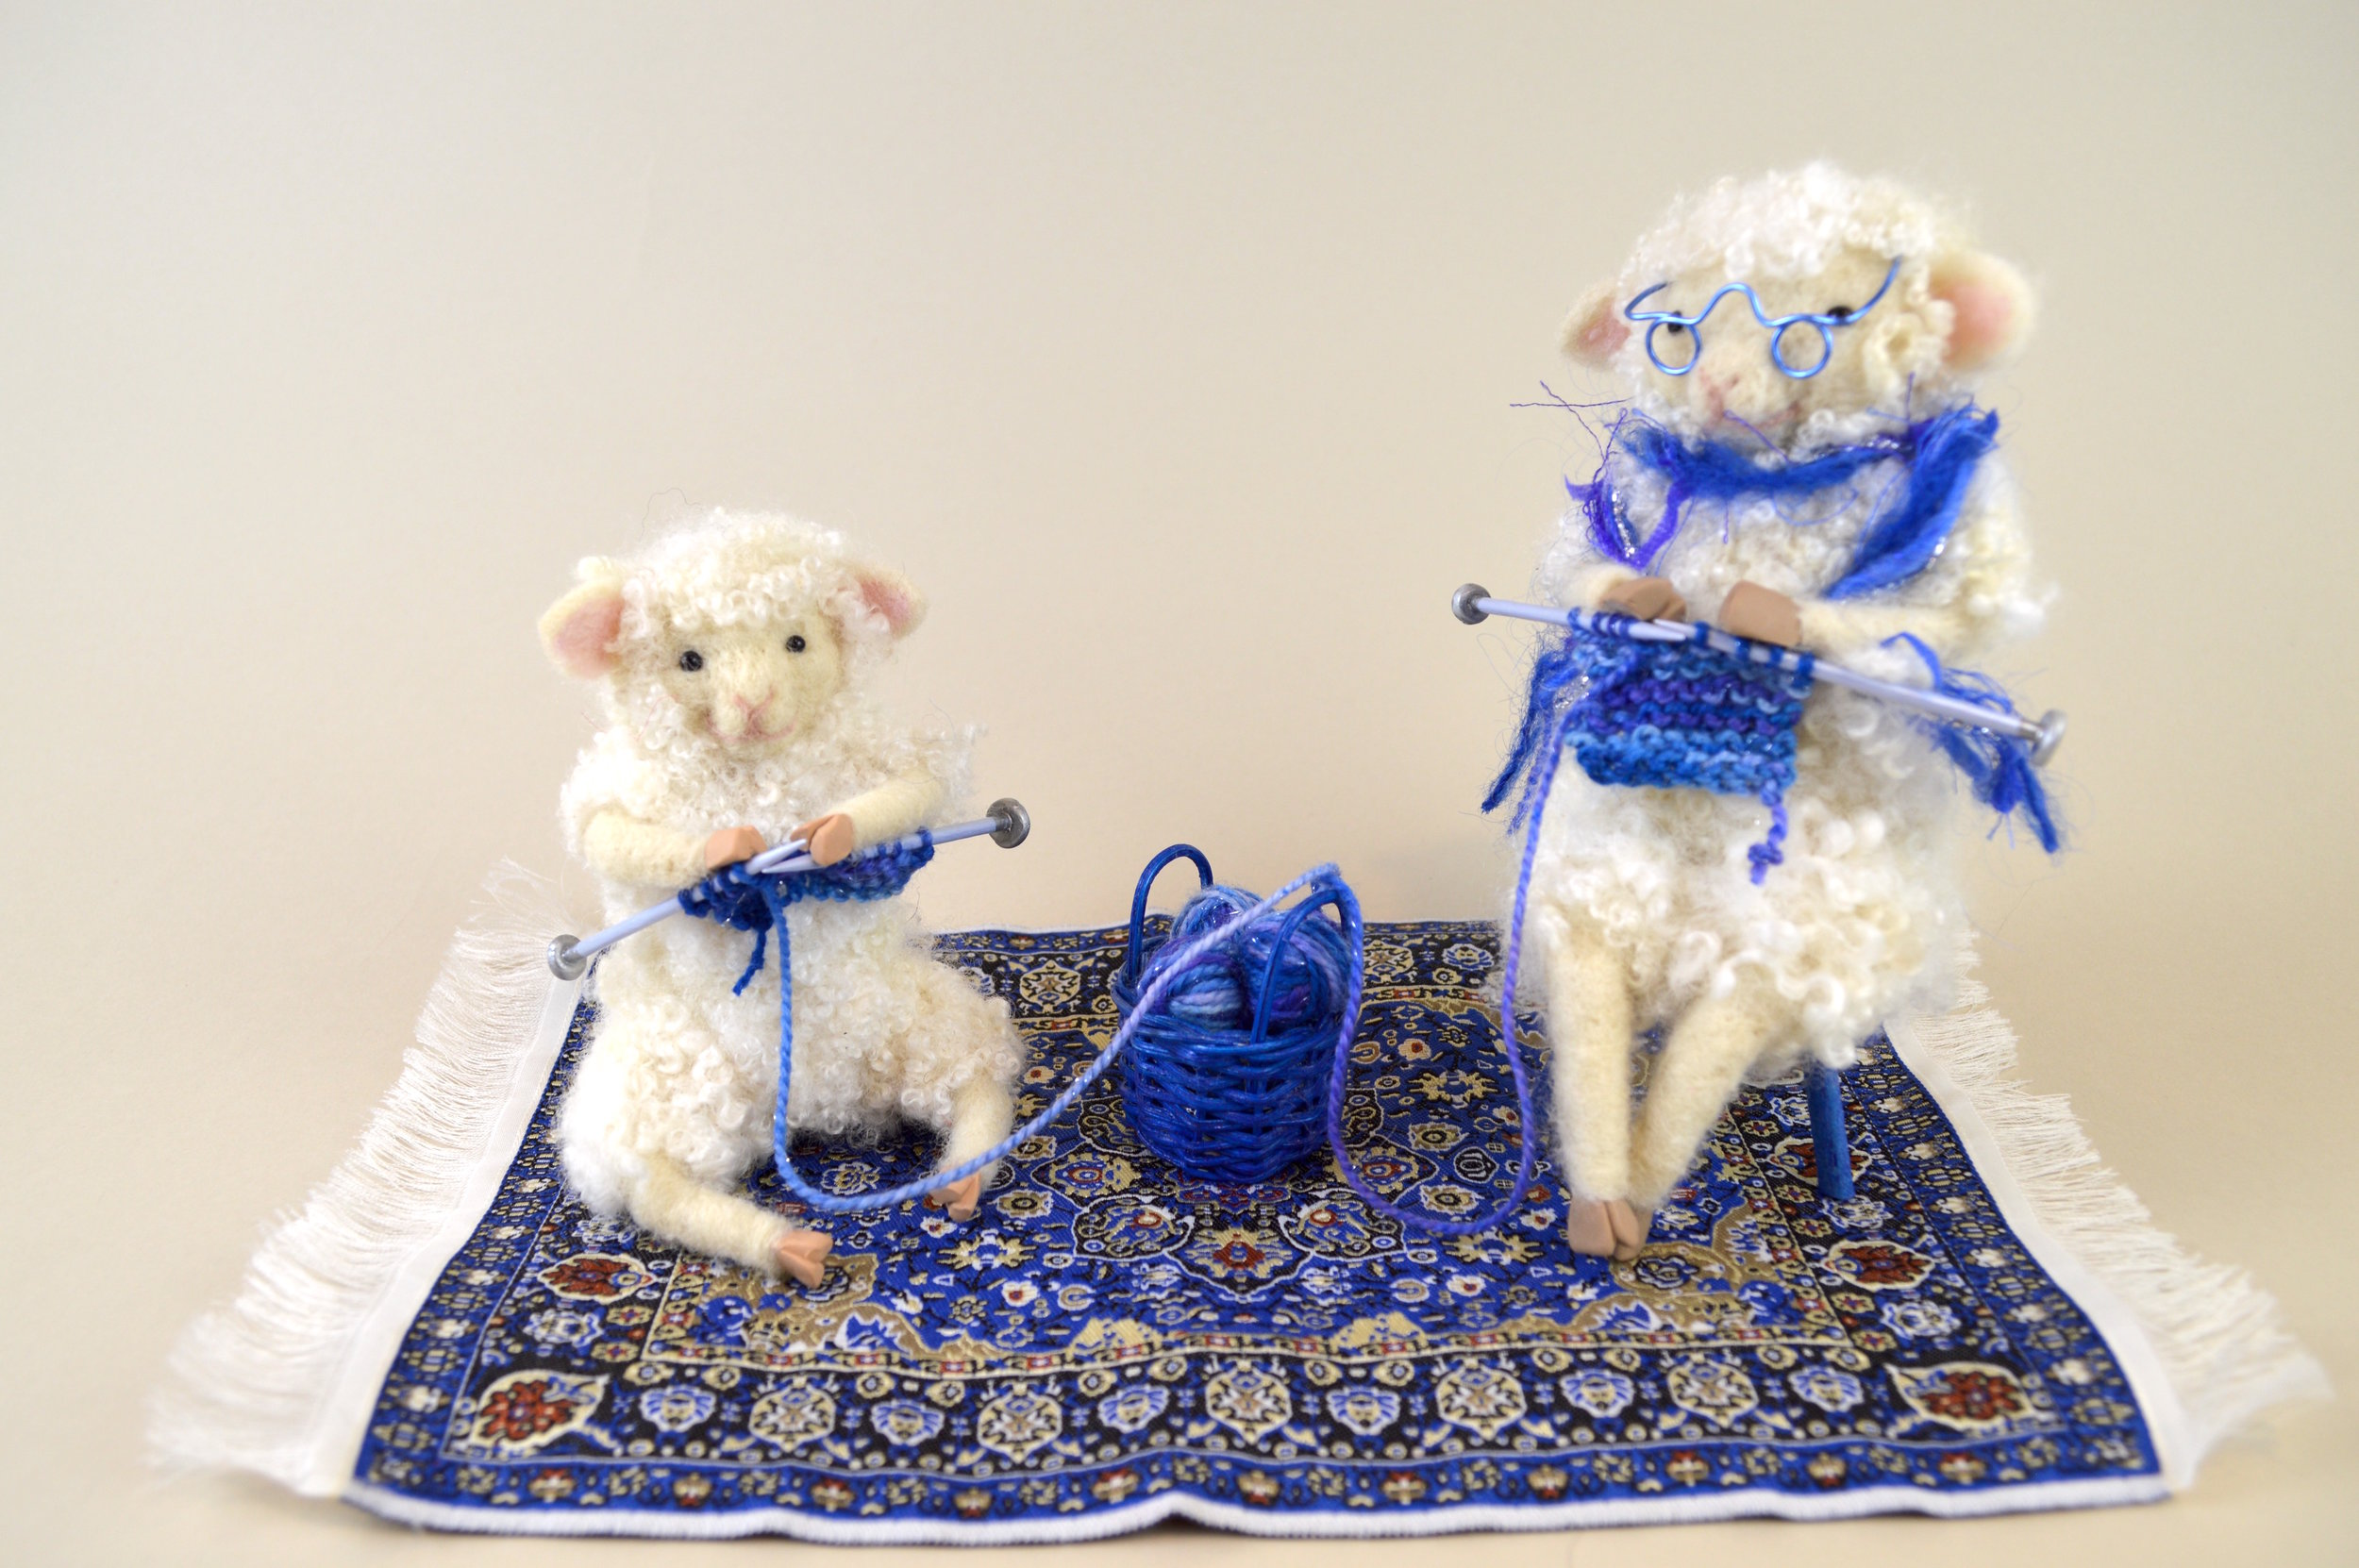 The Knitting Lesson (in Blue)